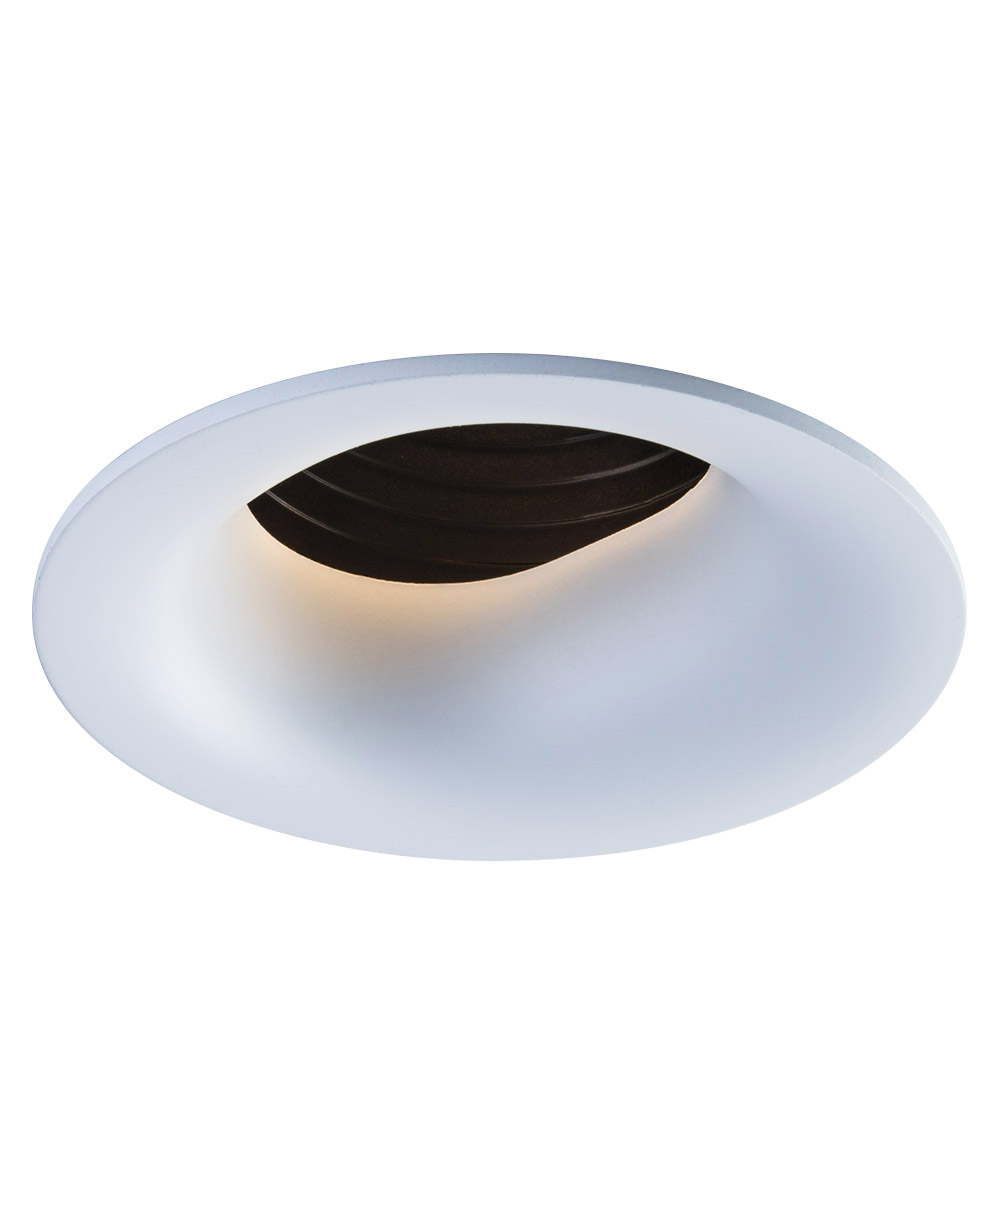 SIGMA 2 Round Slot Wall Wash LED Fixture with Stepped Baffle